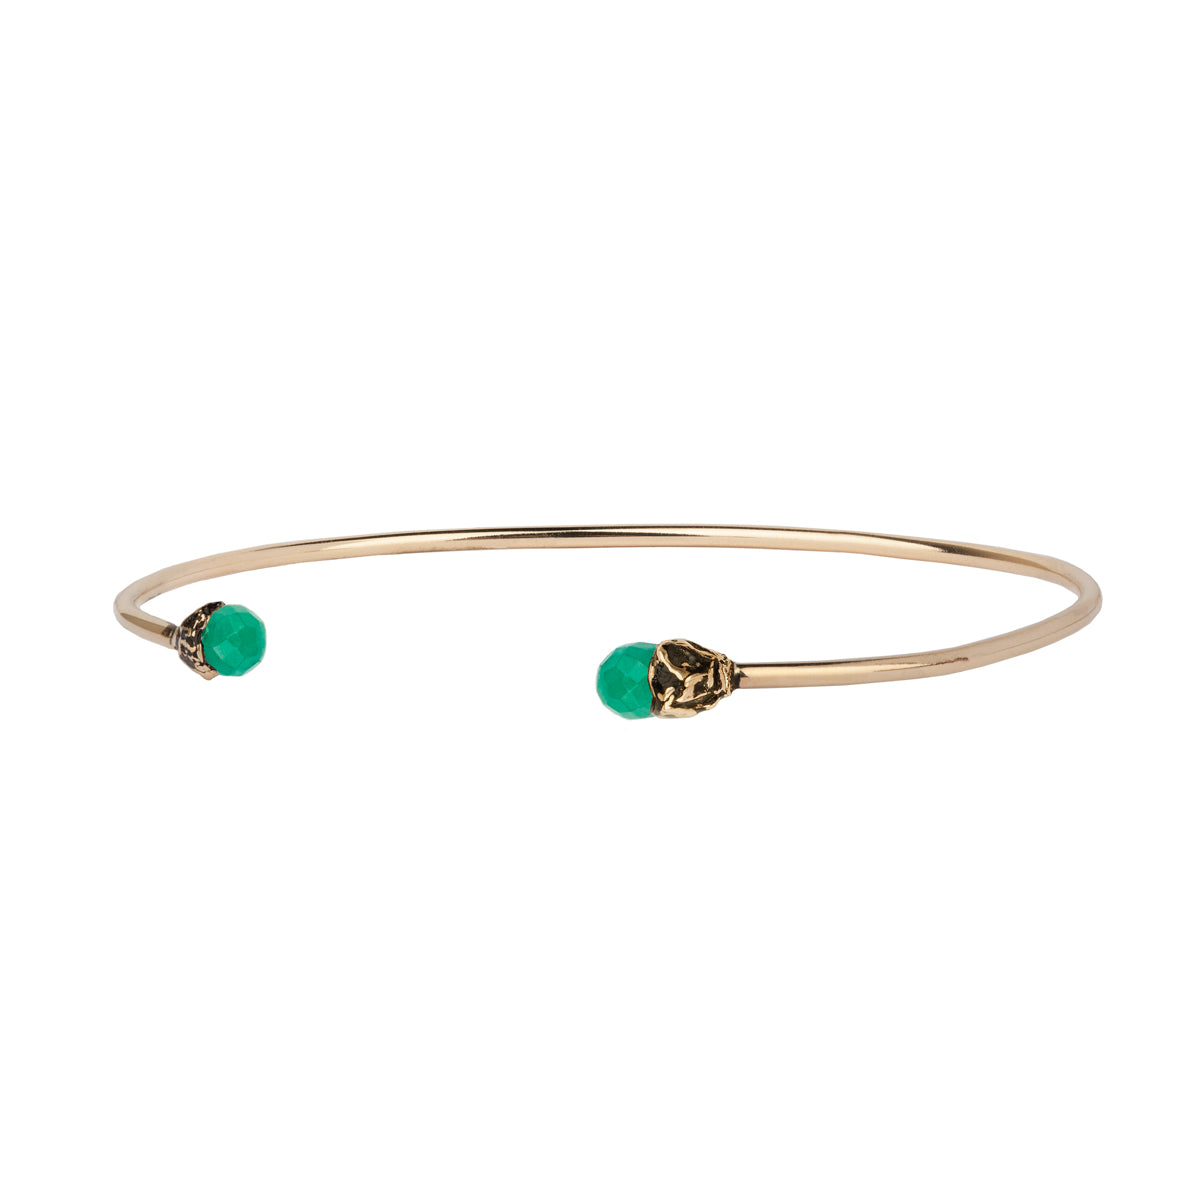 Emerald 14K Gold Capped Open Bangle